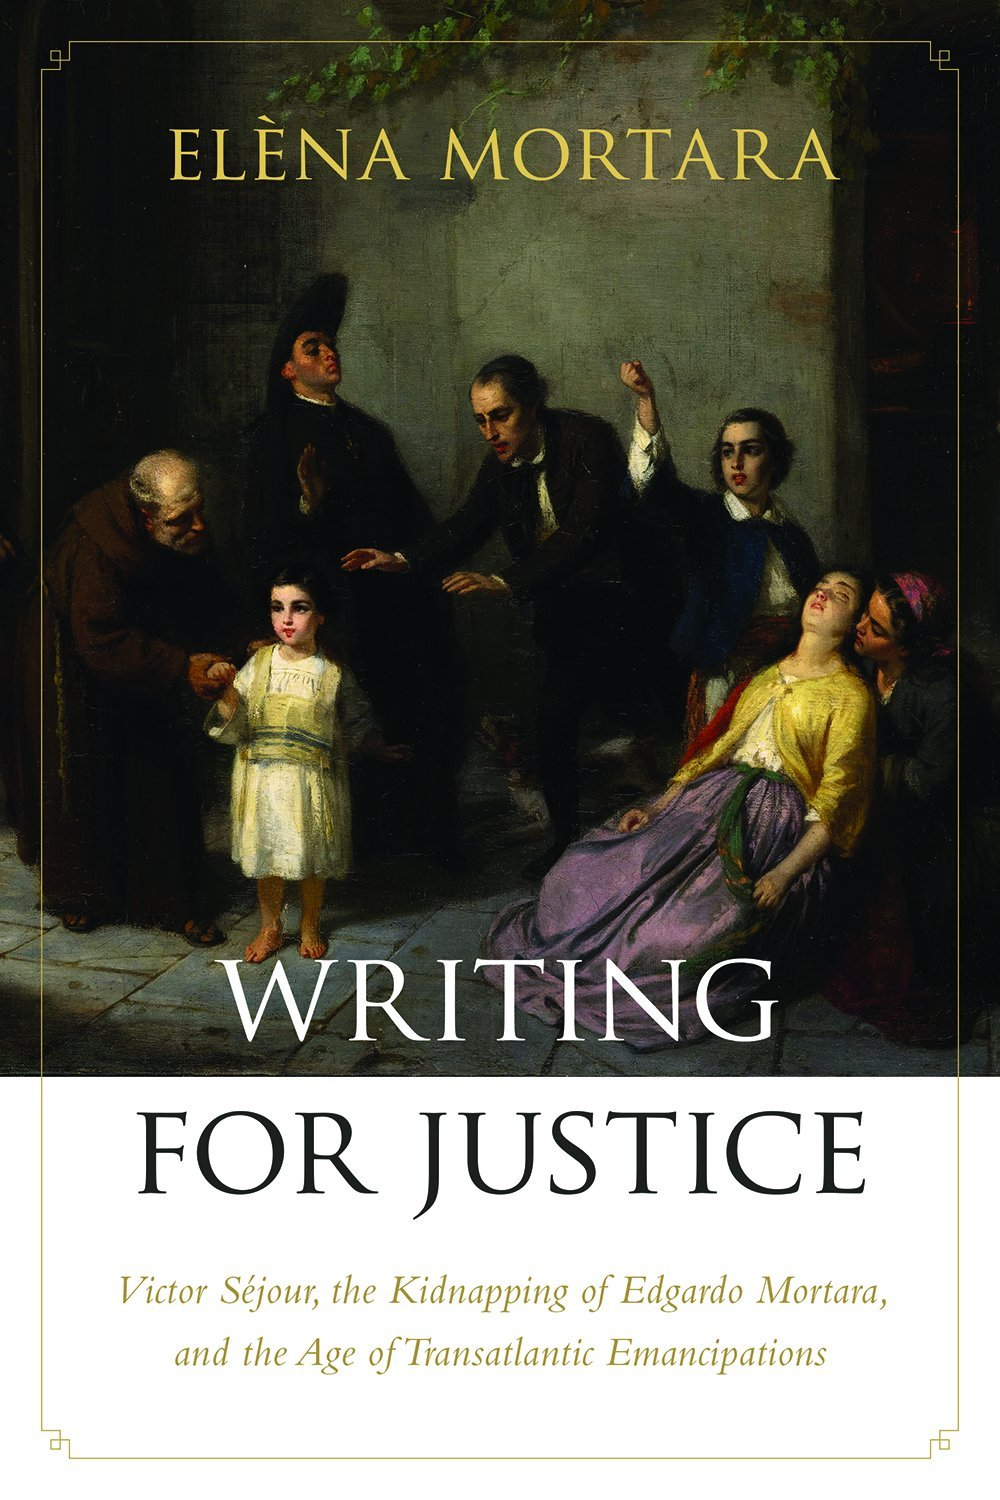 Writing for Justice: Victor Séjour, the Kidnapping of Edgardo Mortara, and the Age of Transatlantic Emancipations (Re-Mapping the Transnational: A Dartmouth Series in American Studies)